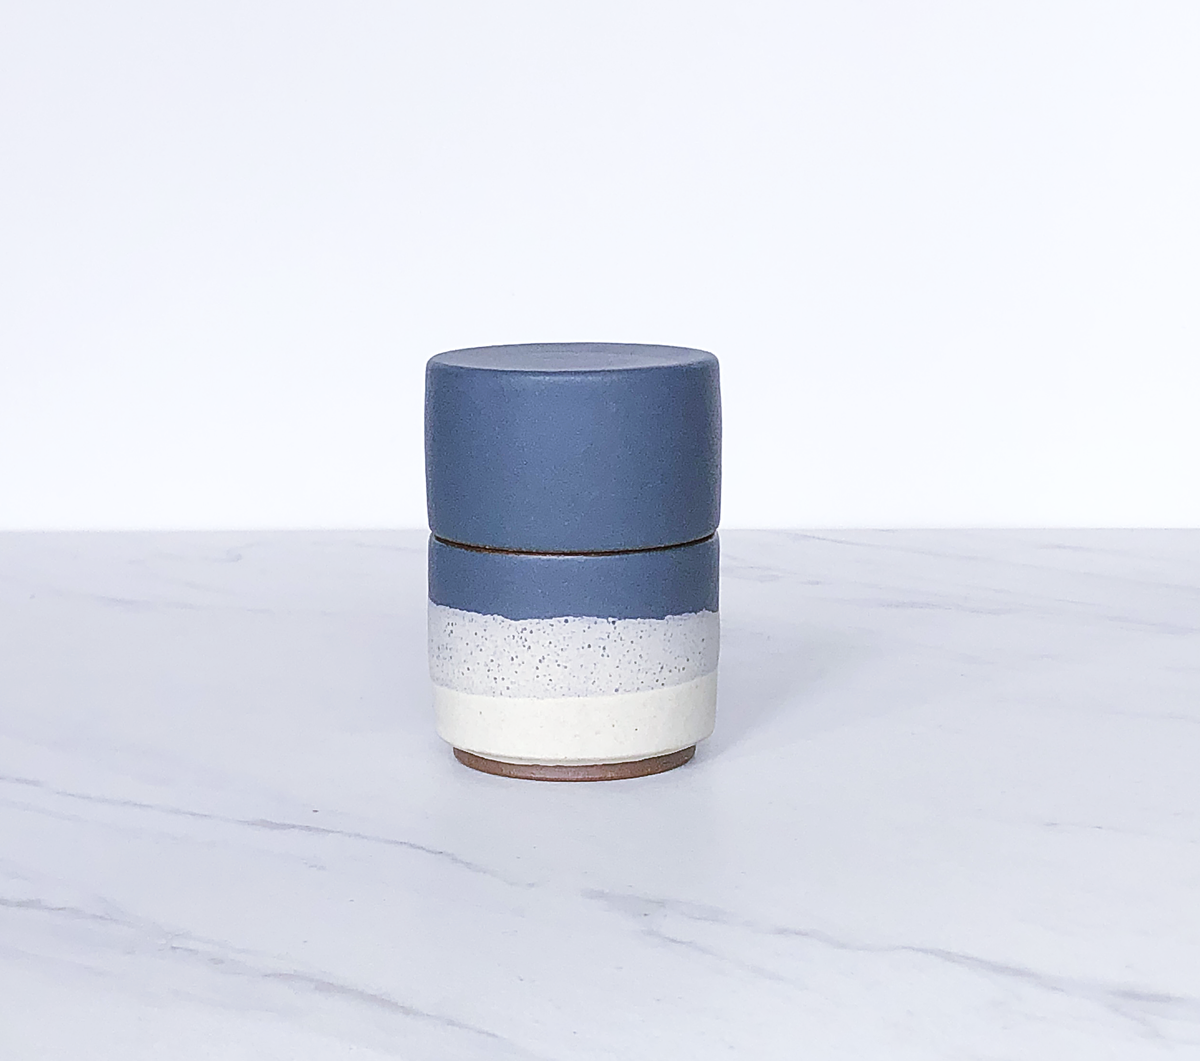 Image of Ceramic match holder with lid, glazed in matte blue slate + cream